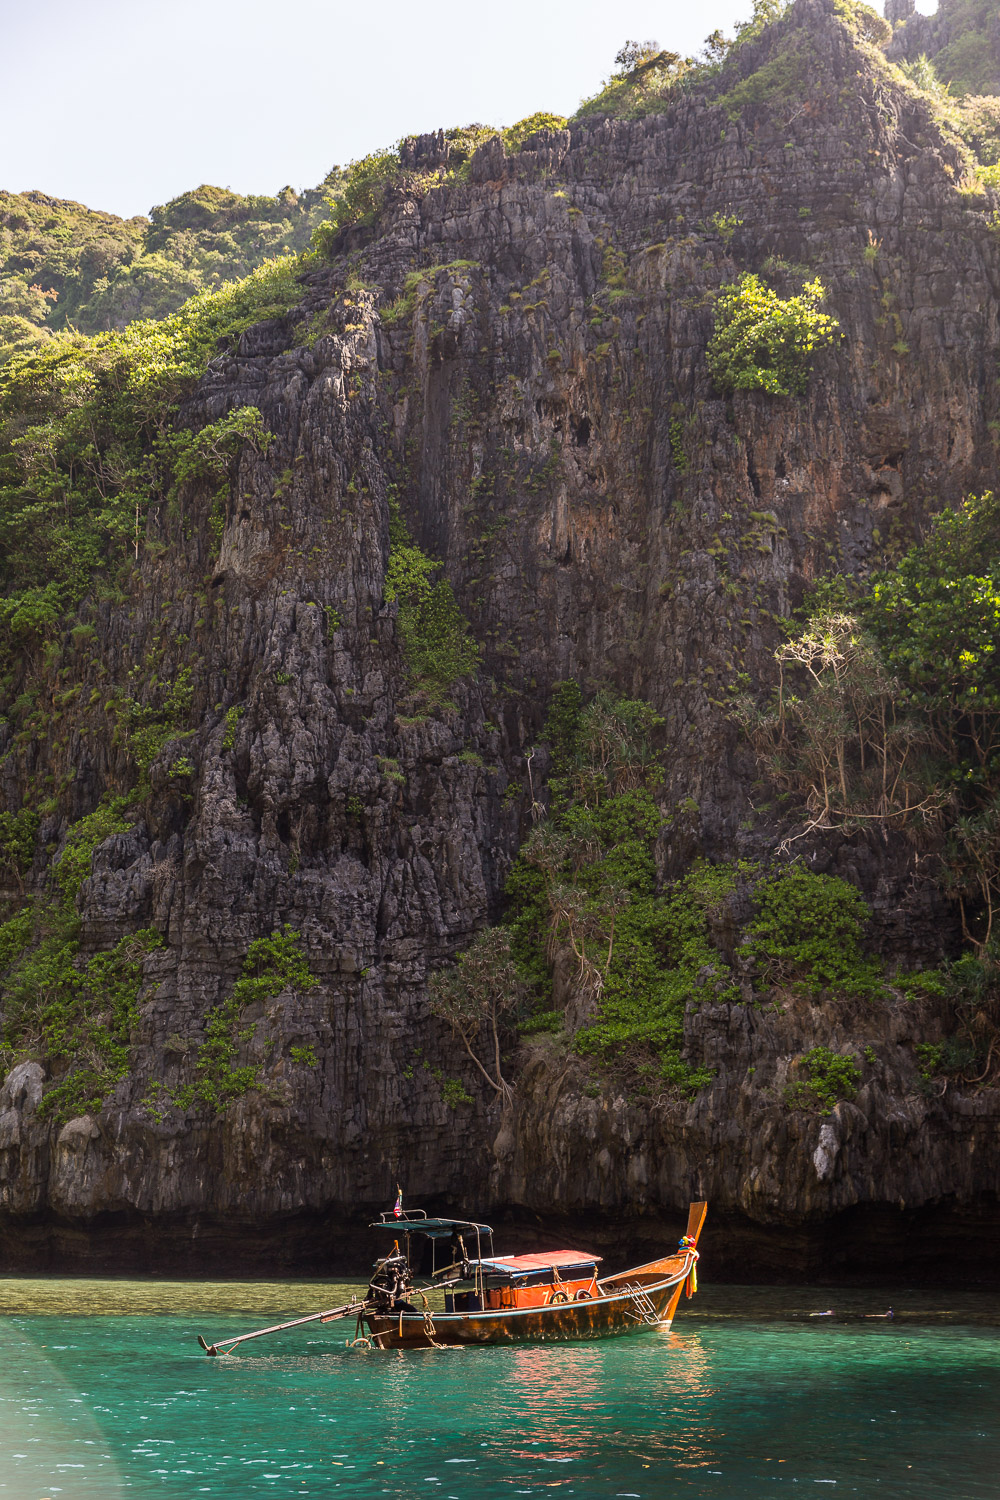 10 Photographs that will make you want to visit Thailand